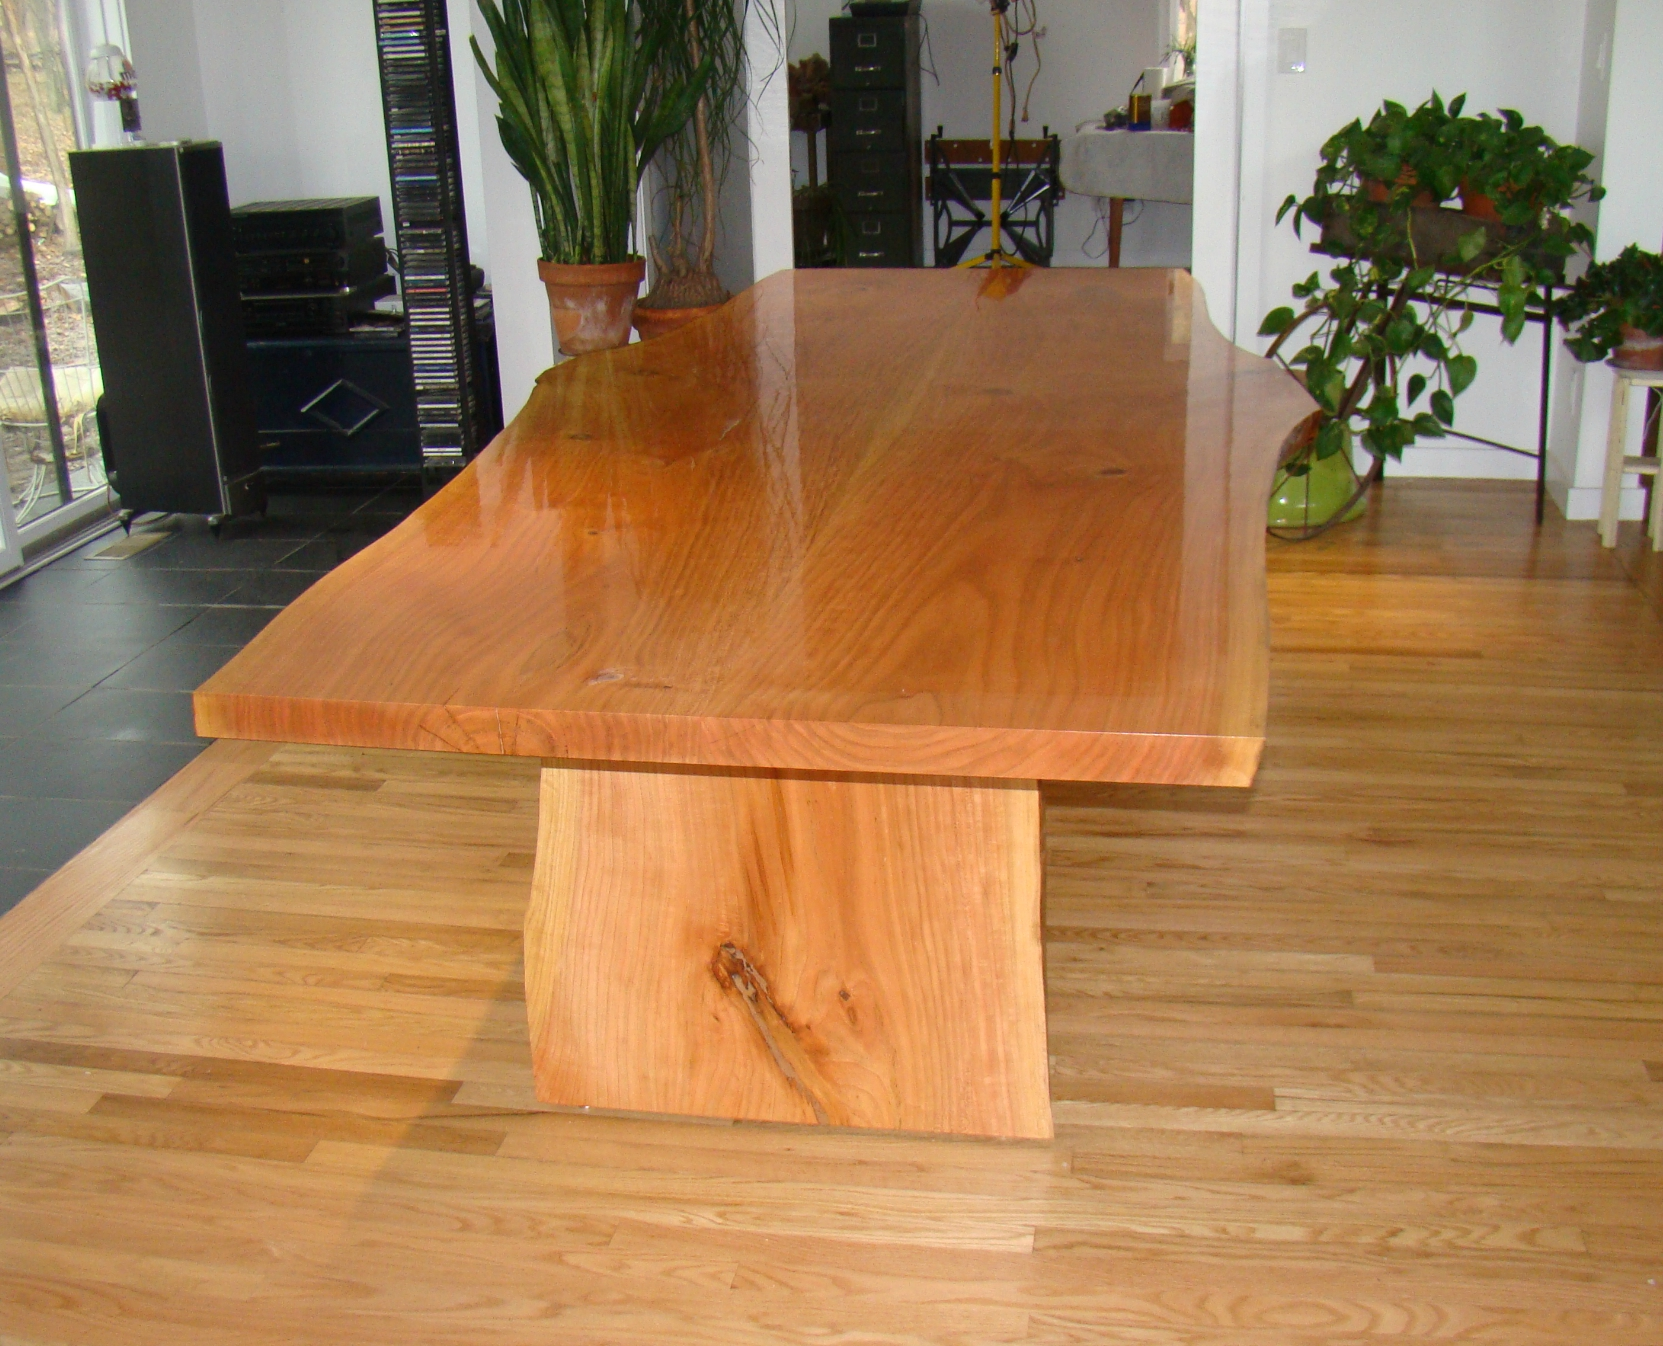 Cherry Dining Room Table by No Walls Studio